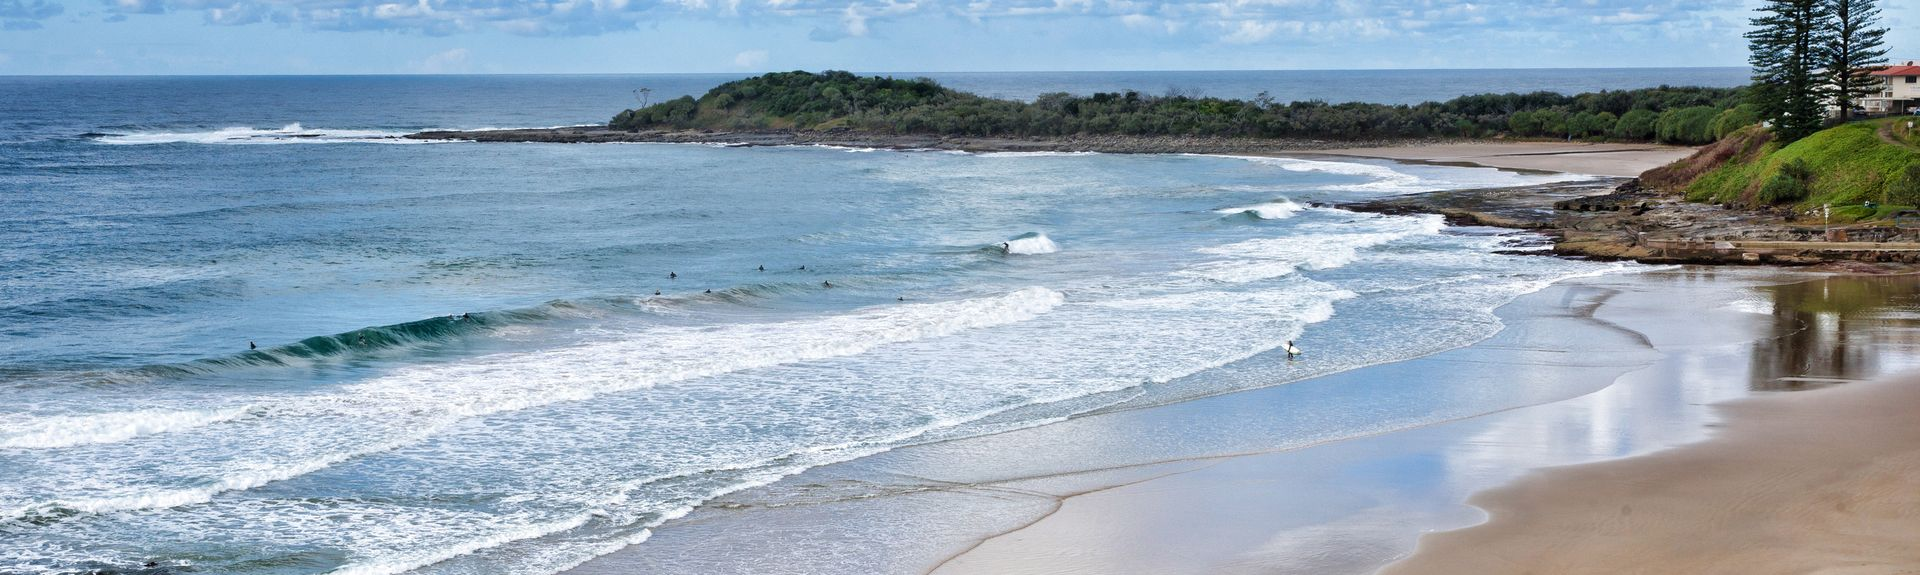 Yamba, New South Wales, Australia